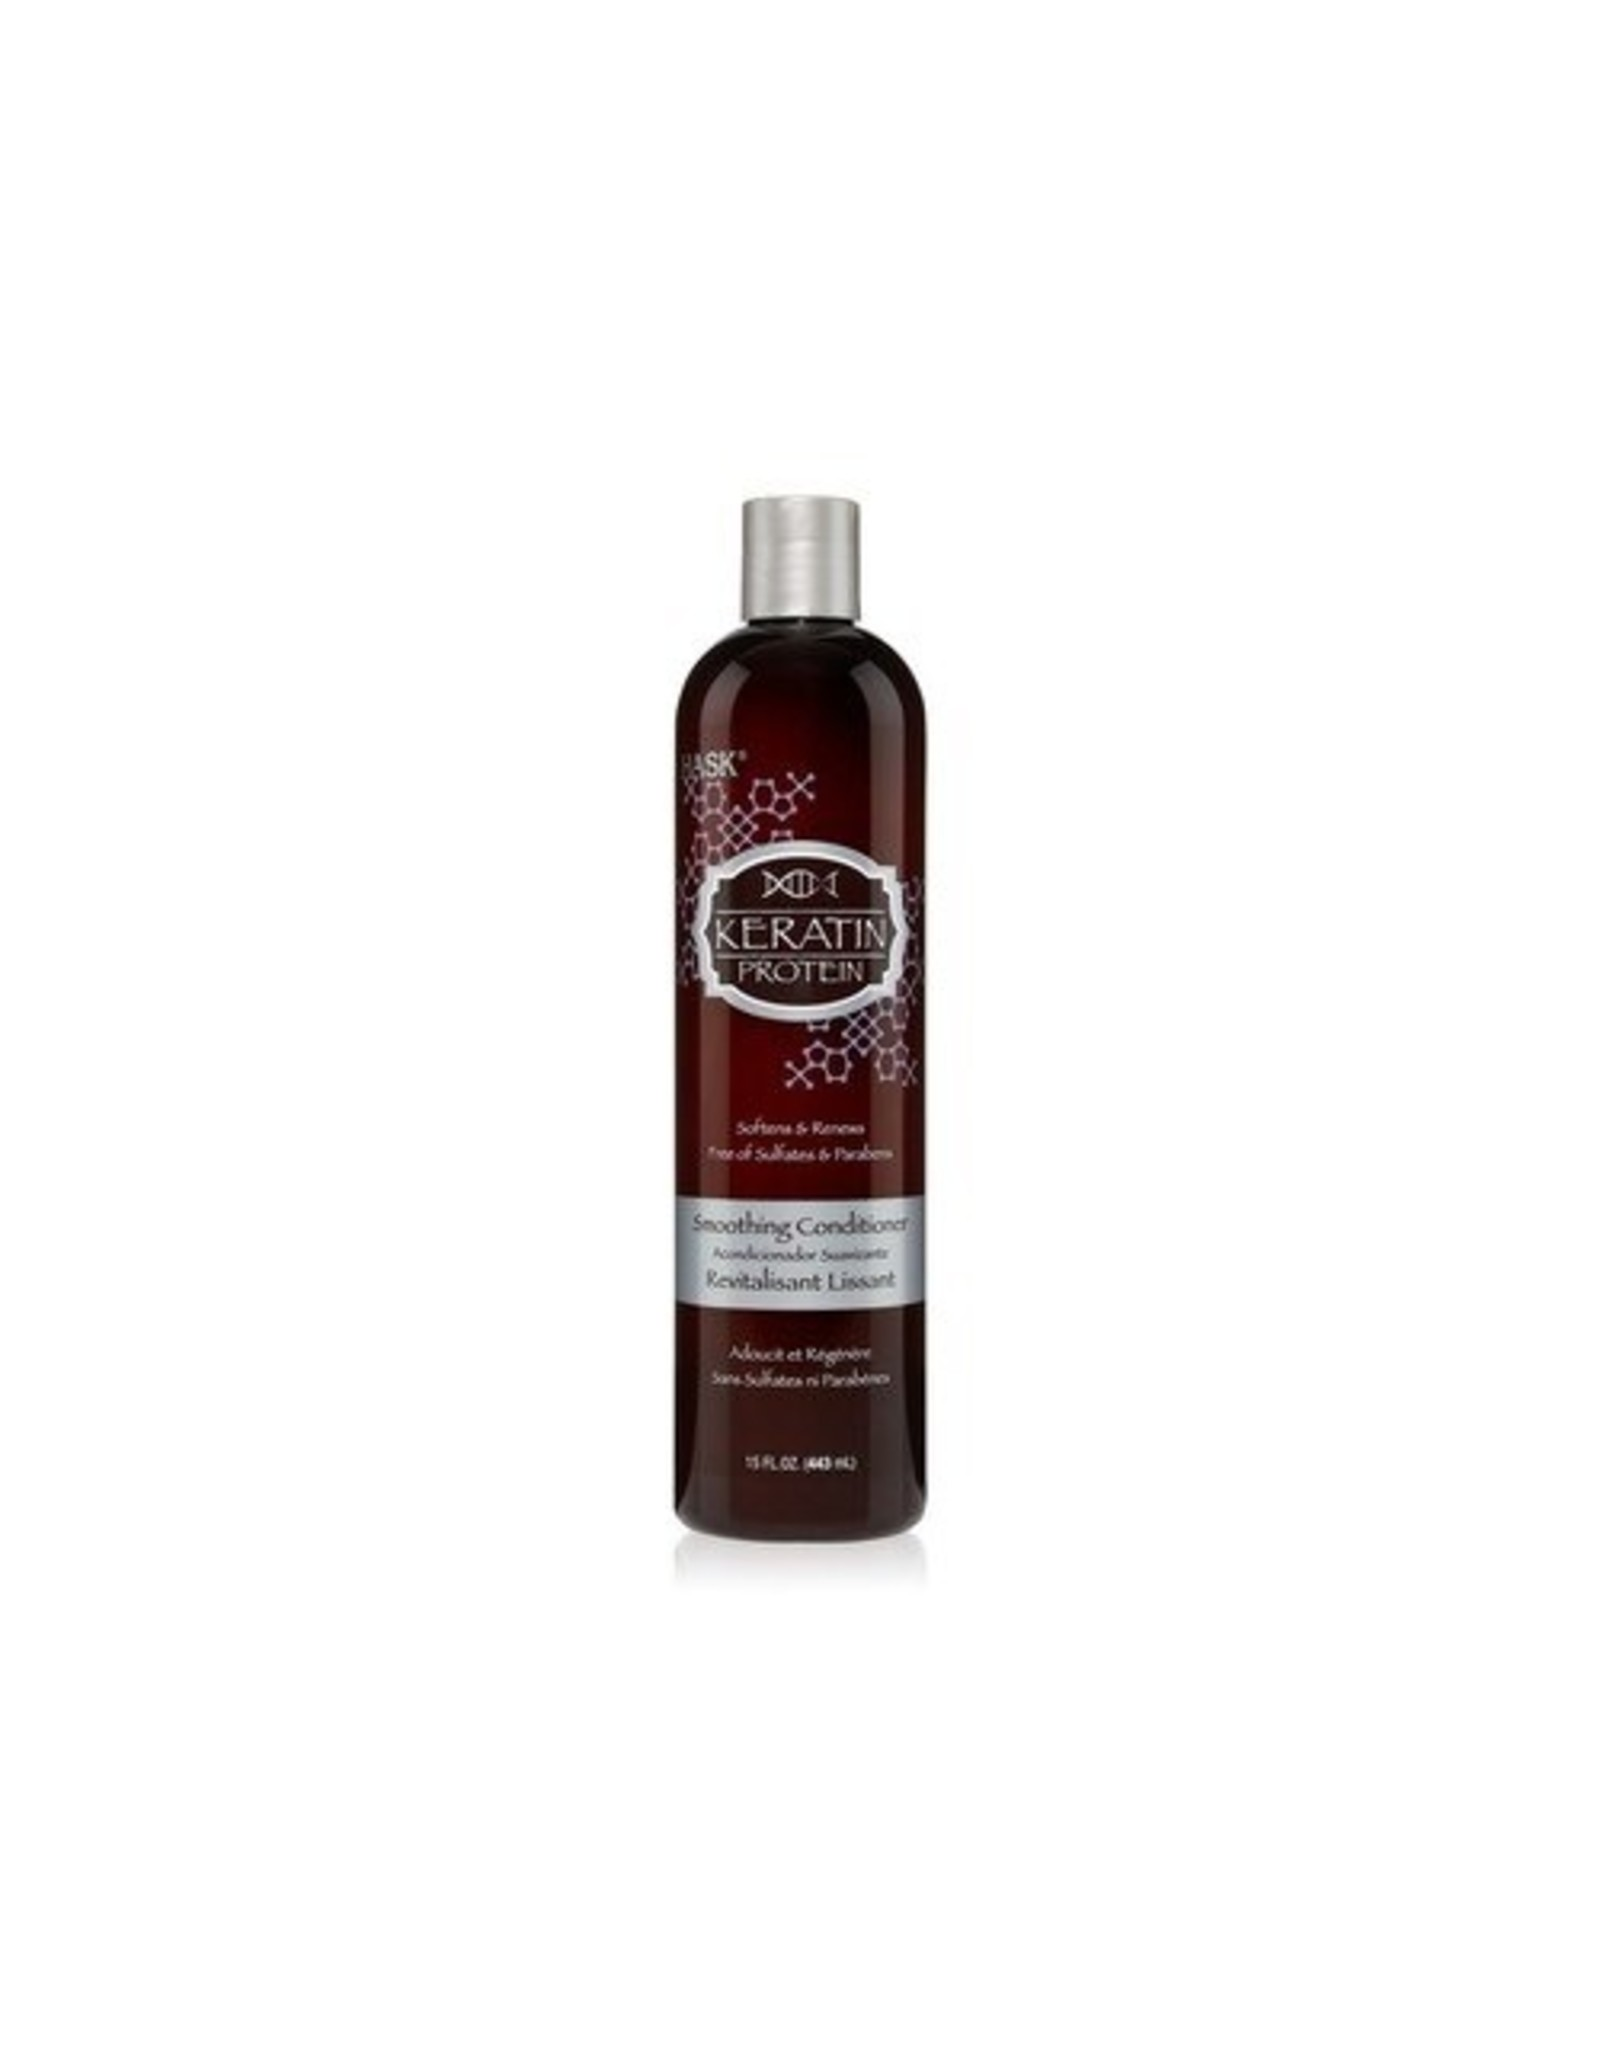 HASK KERATIN PROTEIN SMOOTHING CONDITIONER 12fl oz